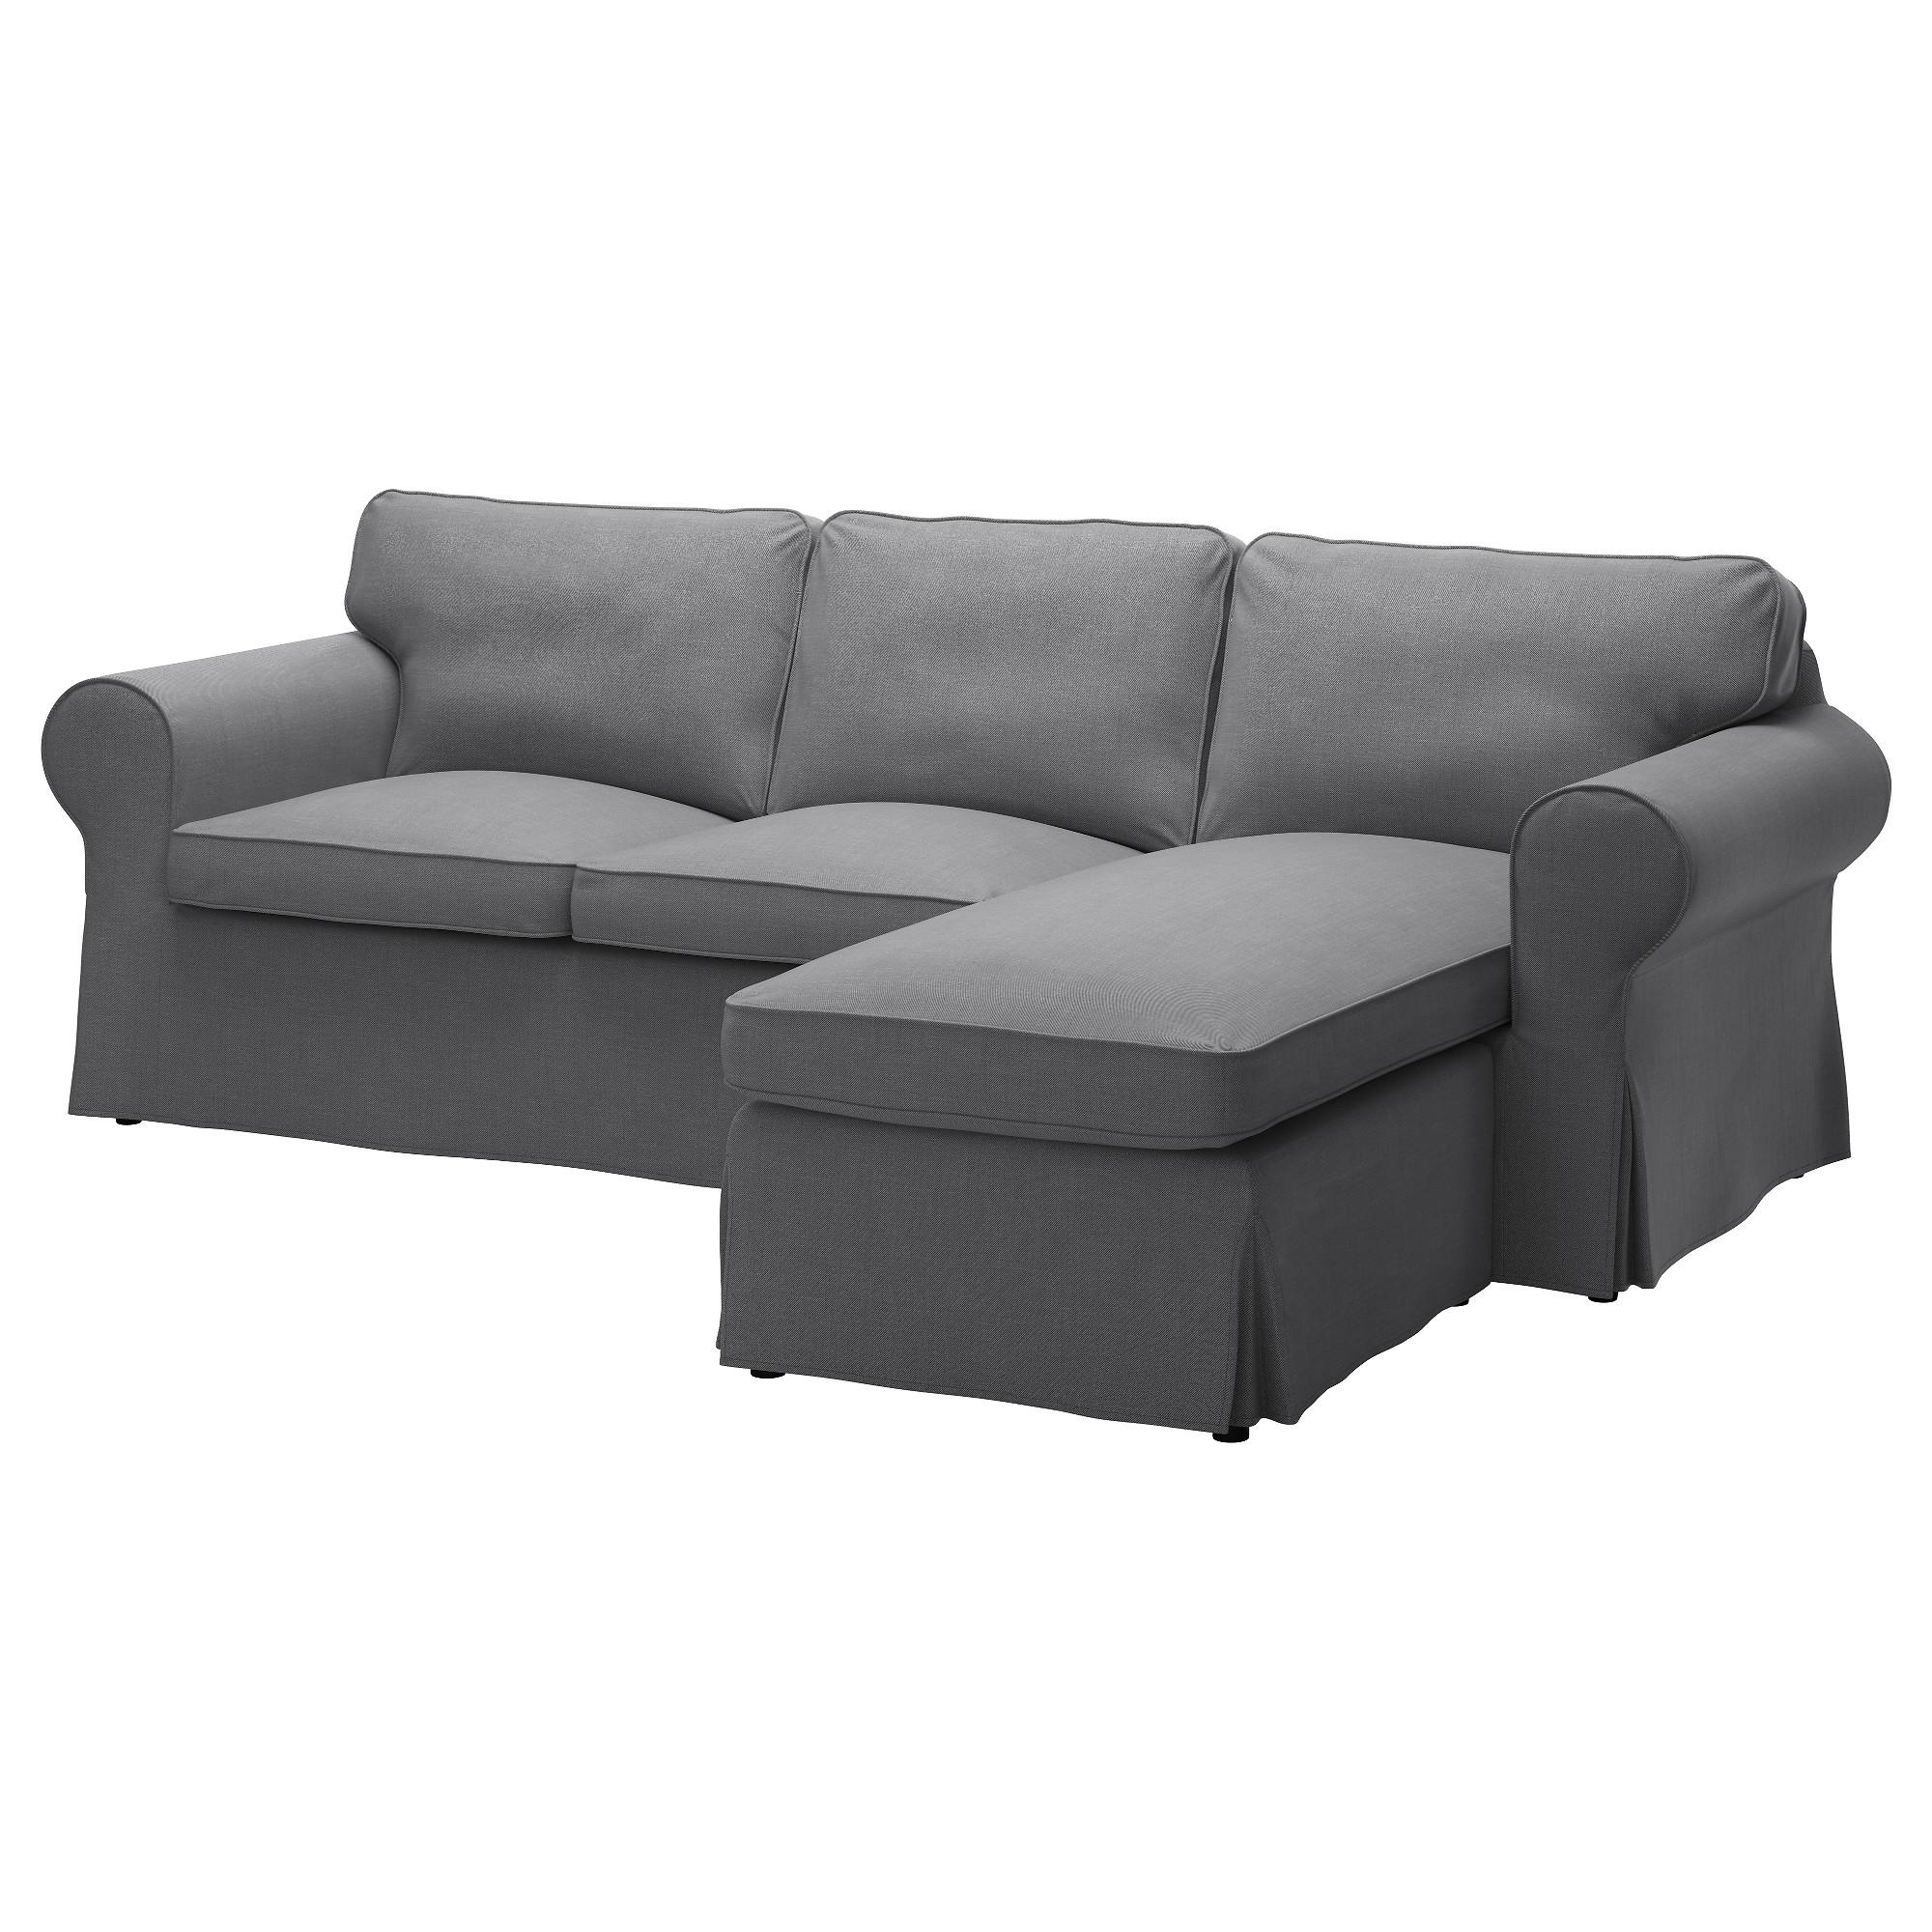 Ektorp 3 Seat Sofa With Chaise Longue/nordvalla Dark Grey – Ikea Intended For Sofas With Chaise Longue (View 9 of 20)